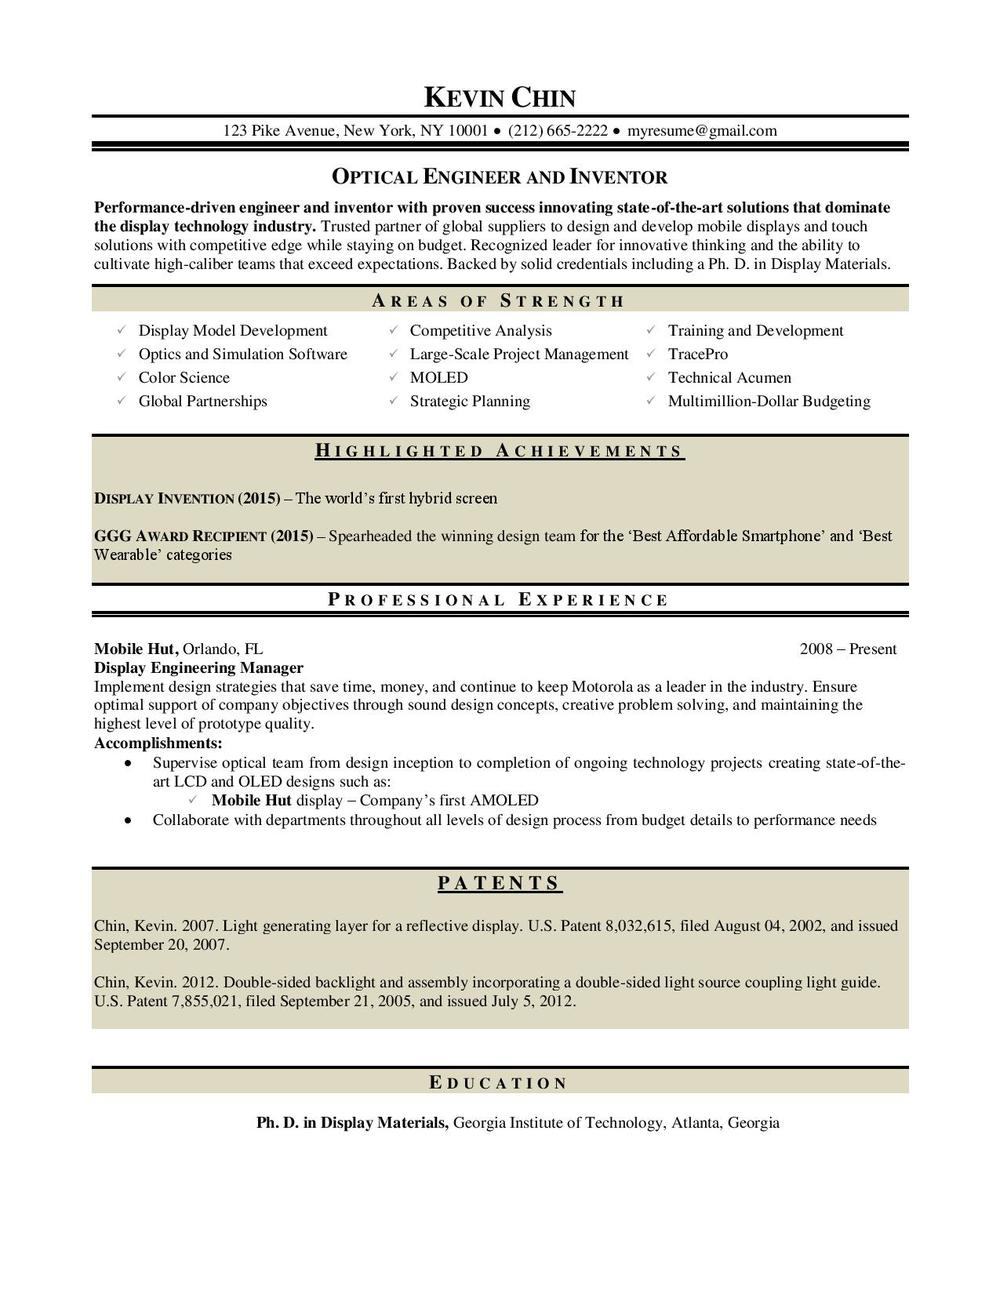 resume Certified Resume Writer Salary resume newbie certified professional writing services jpg